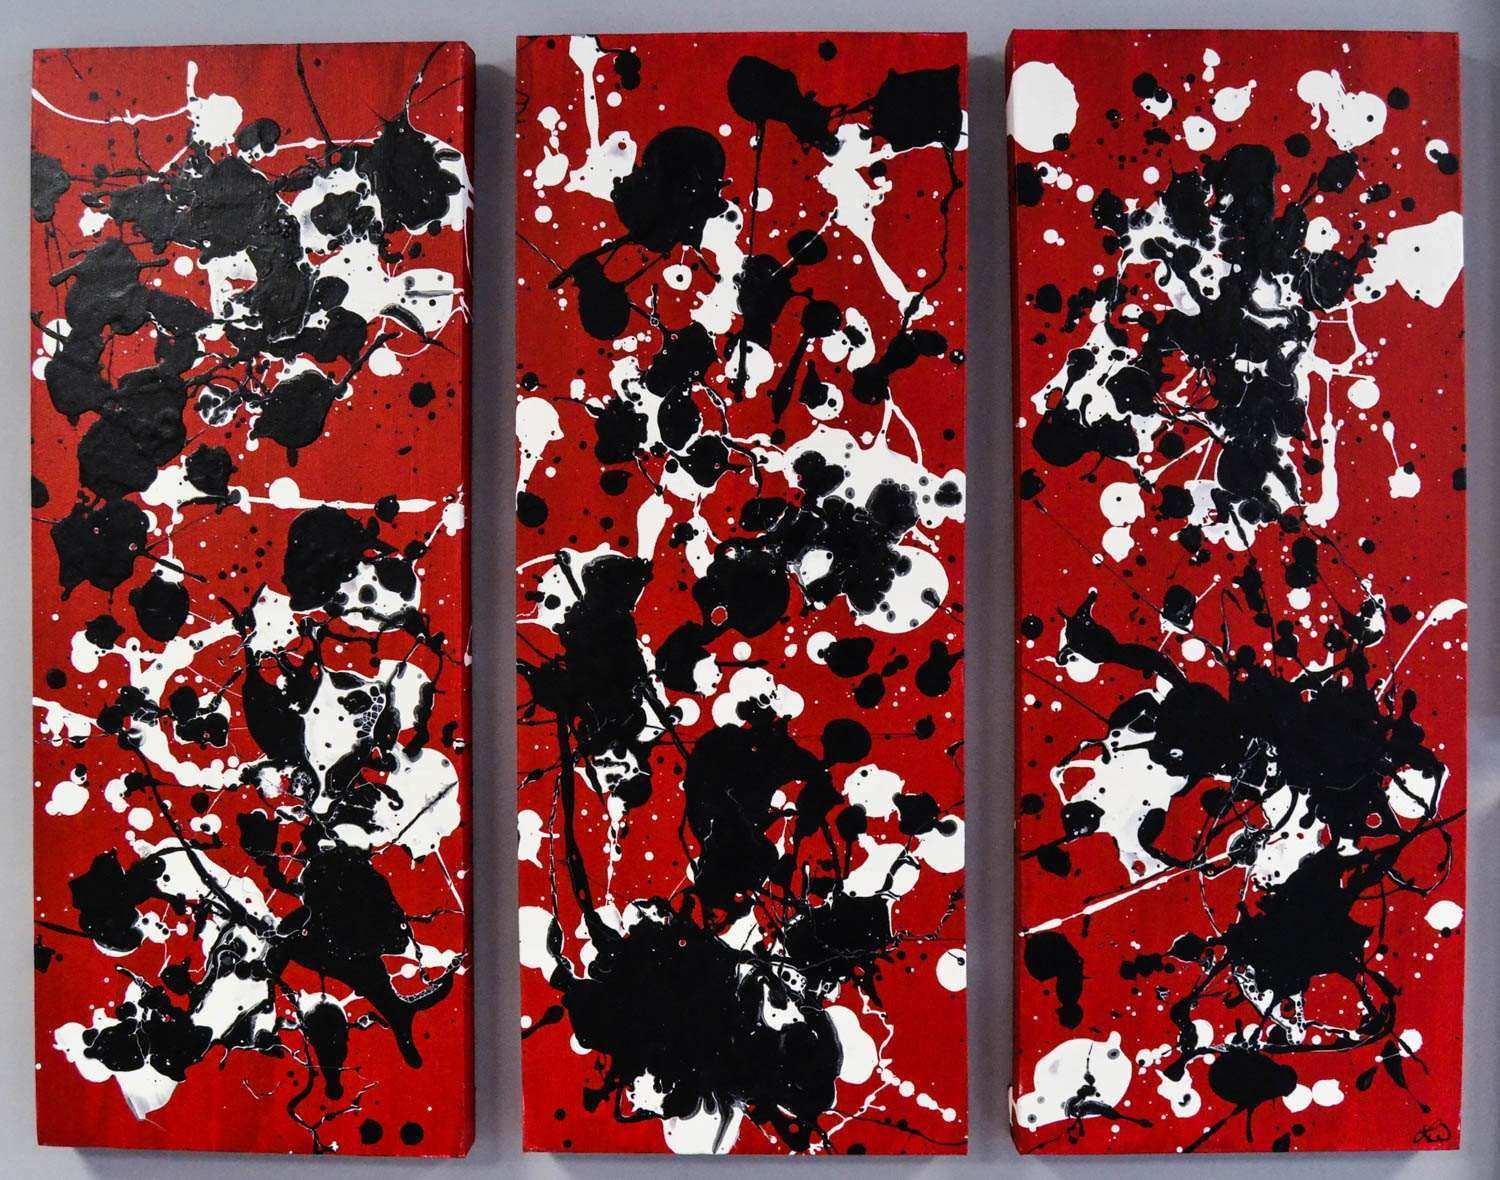 SALE Red Black and White Canvas Triptych Painting 36x30